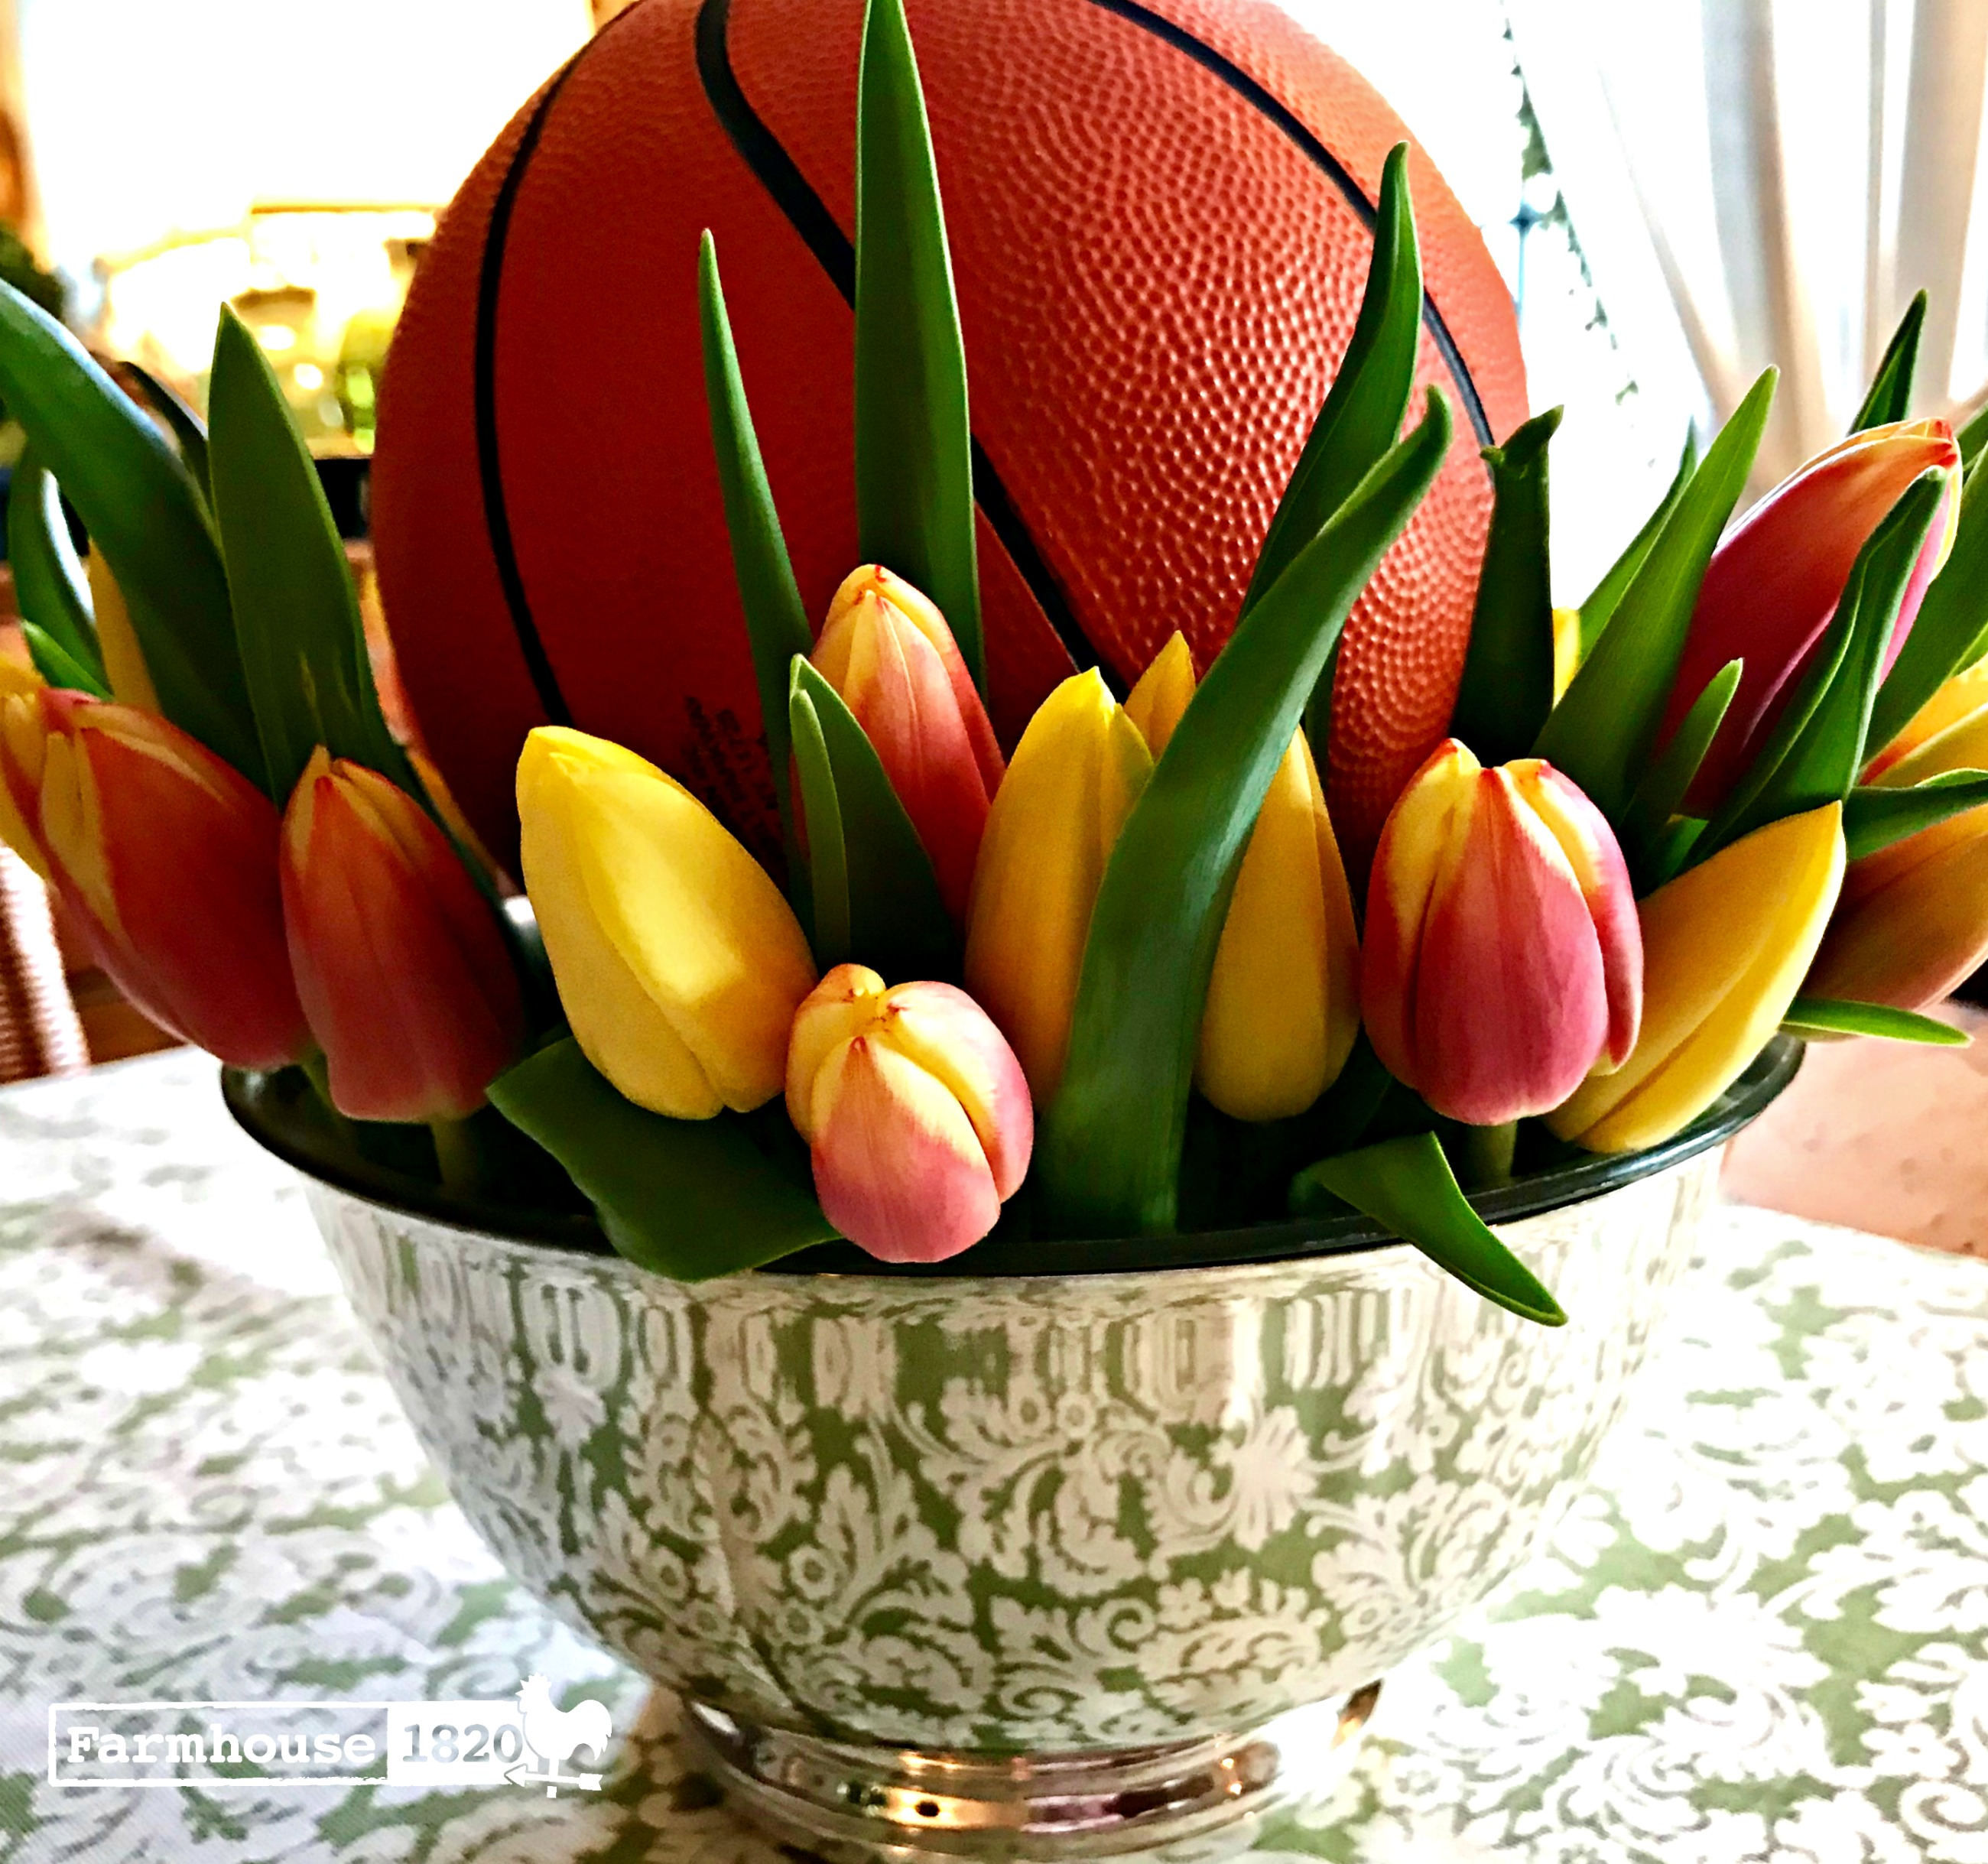 March Madness - a floral arrangement with tulips and a basketball